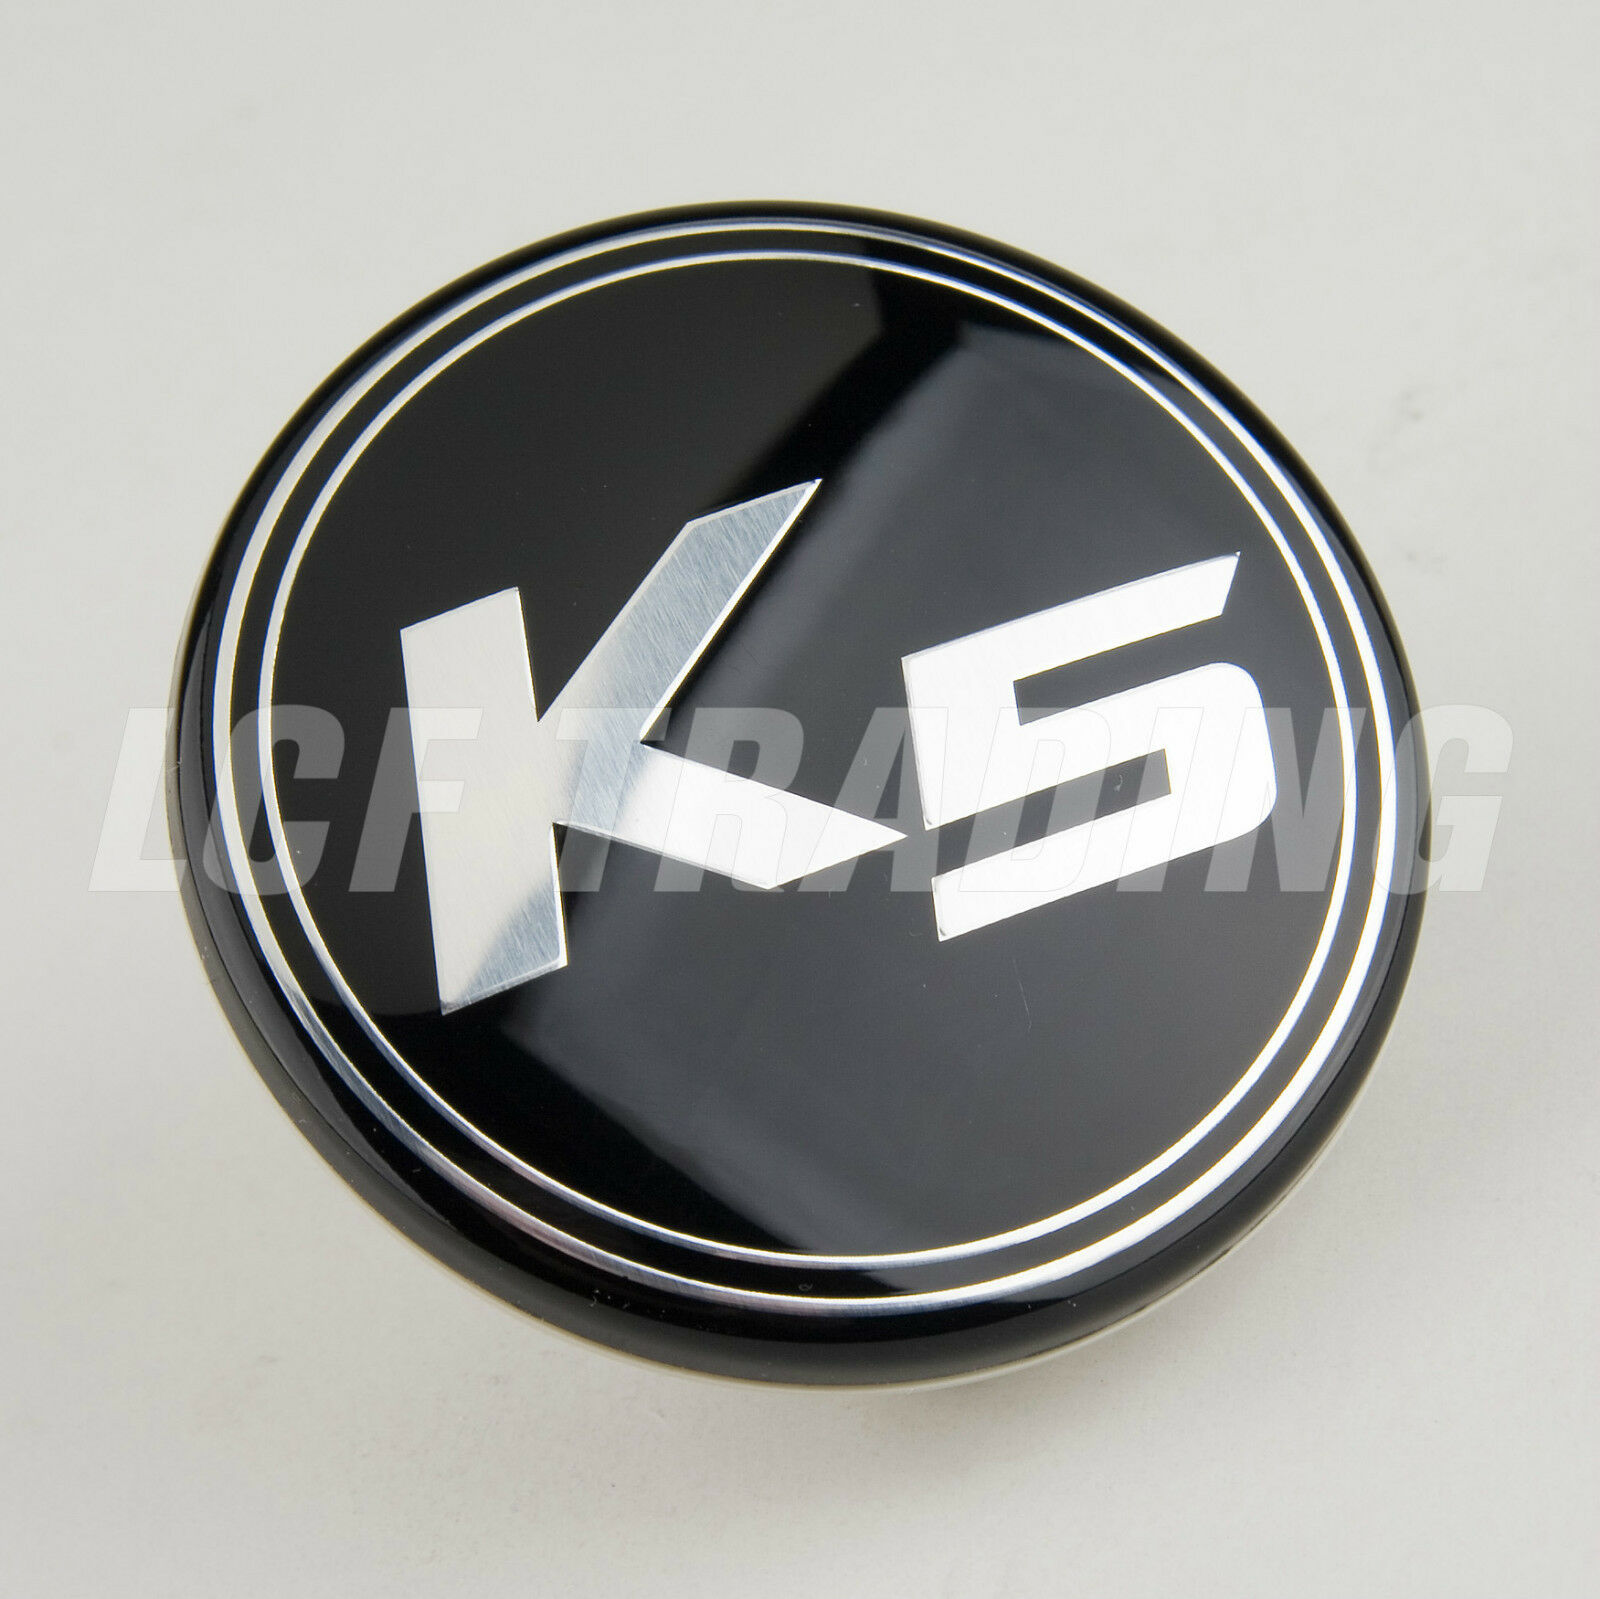 performance usb buttons computers logo dp accessories wheel optical with amazon kia mouse scroll ddi manhattan new four and com wireless